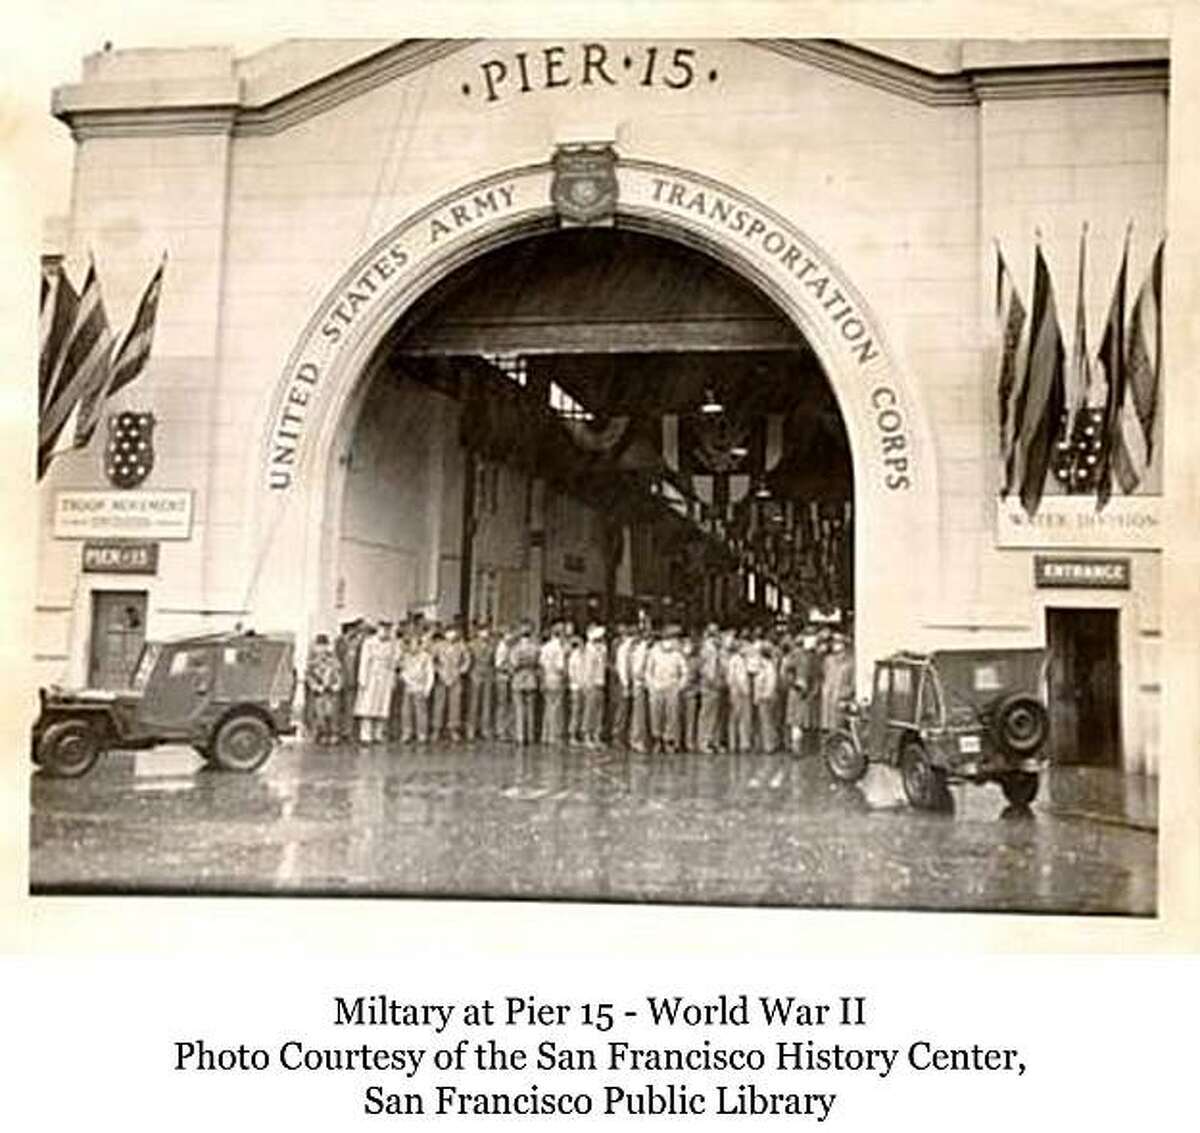 Piers 15 was used by the military during World War II. Now it will be home to the Exploratorium, which is moving east from the Palace of Fine Arts in a $300 million expansion project.